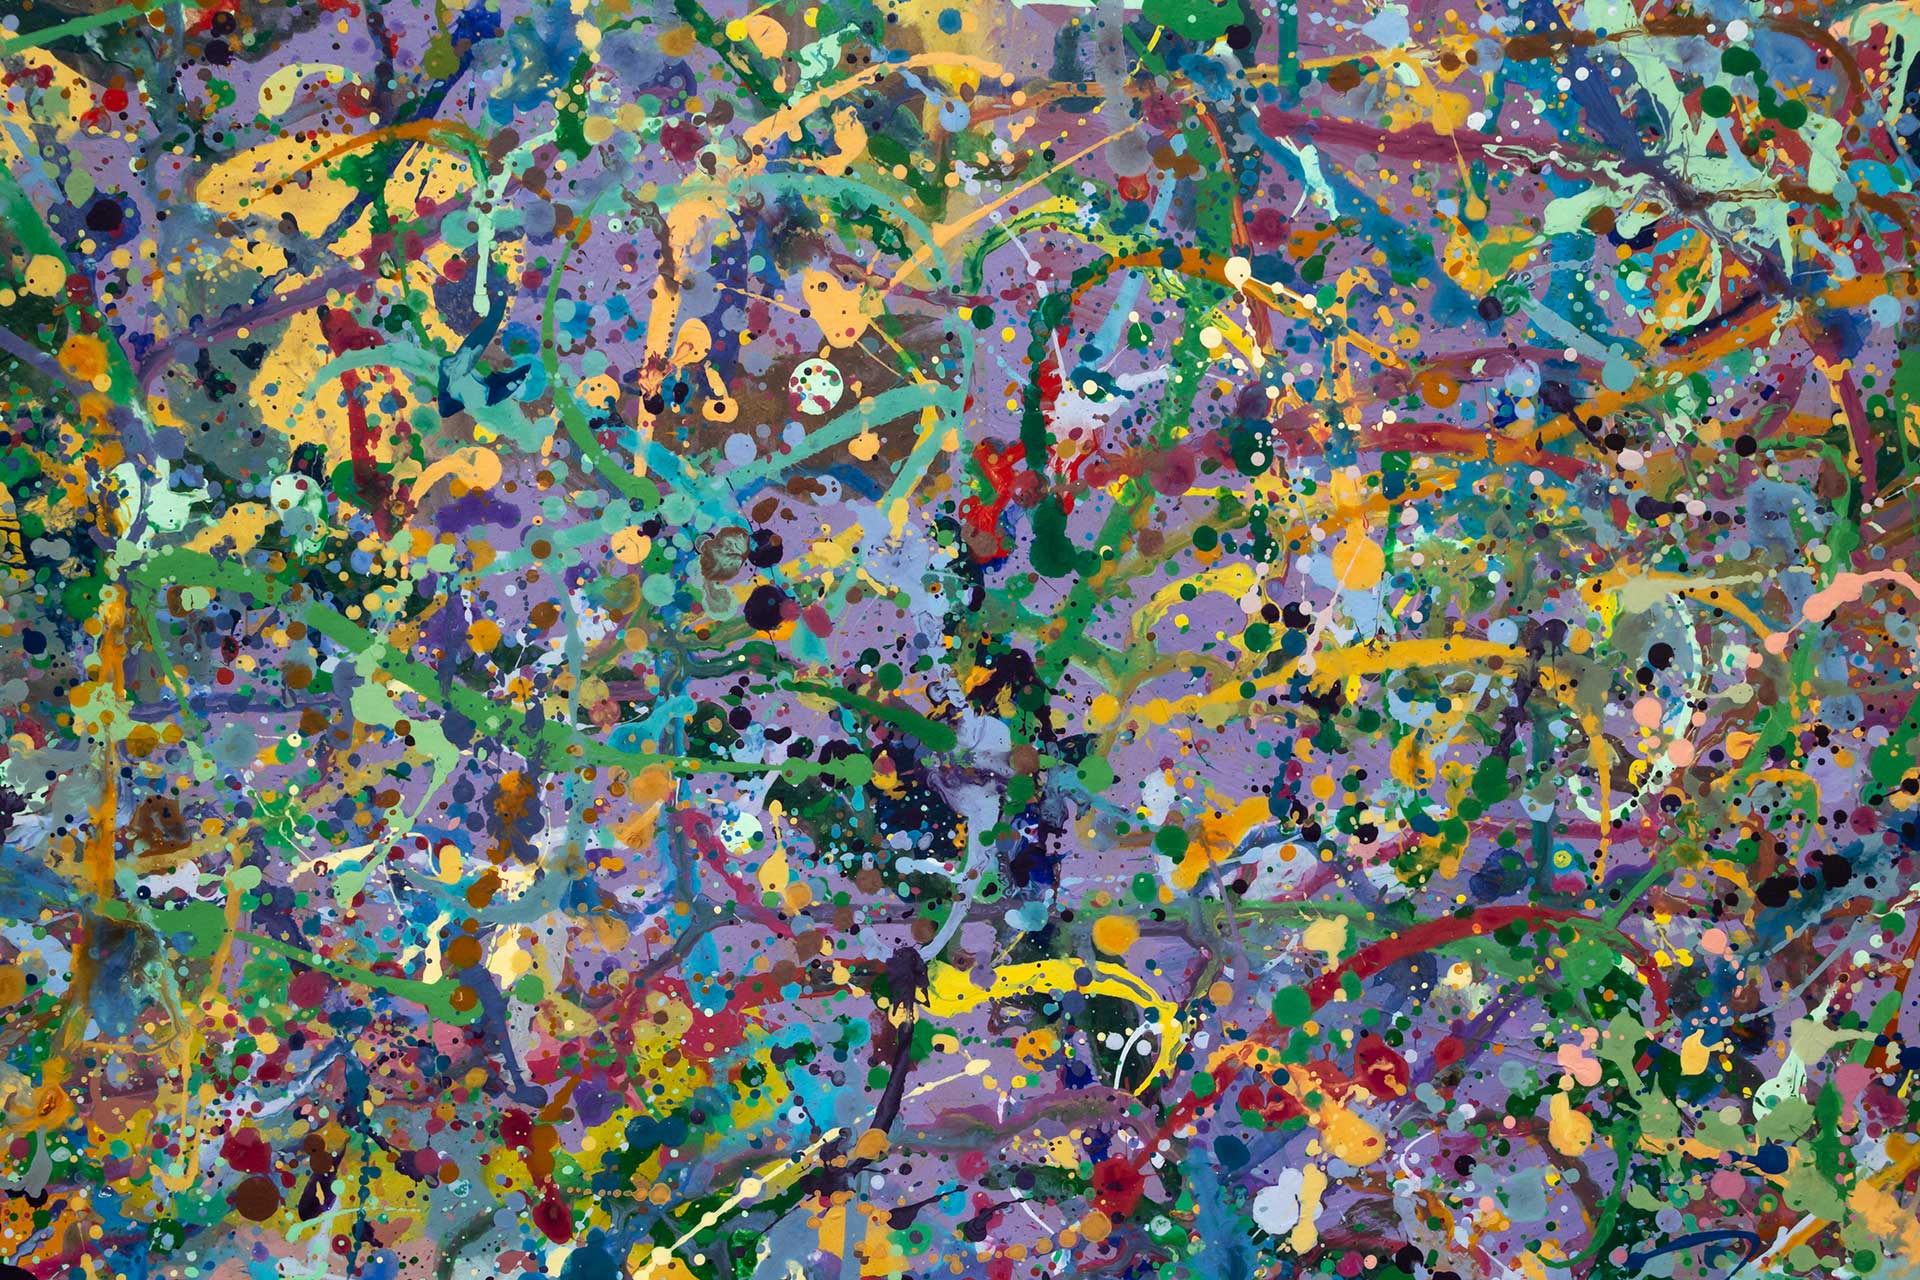 Abstract expressionism painting - Butterfly orgy - Detail 5